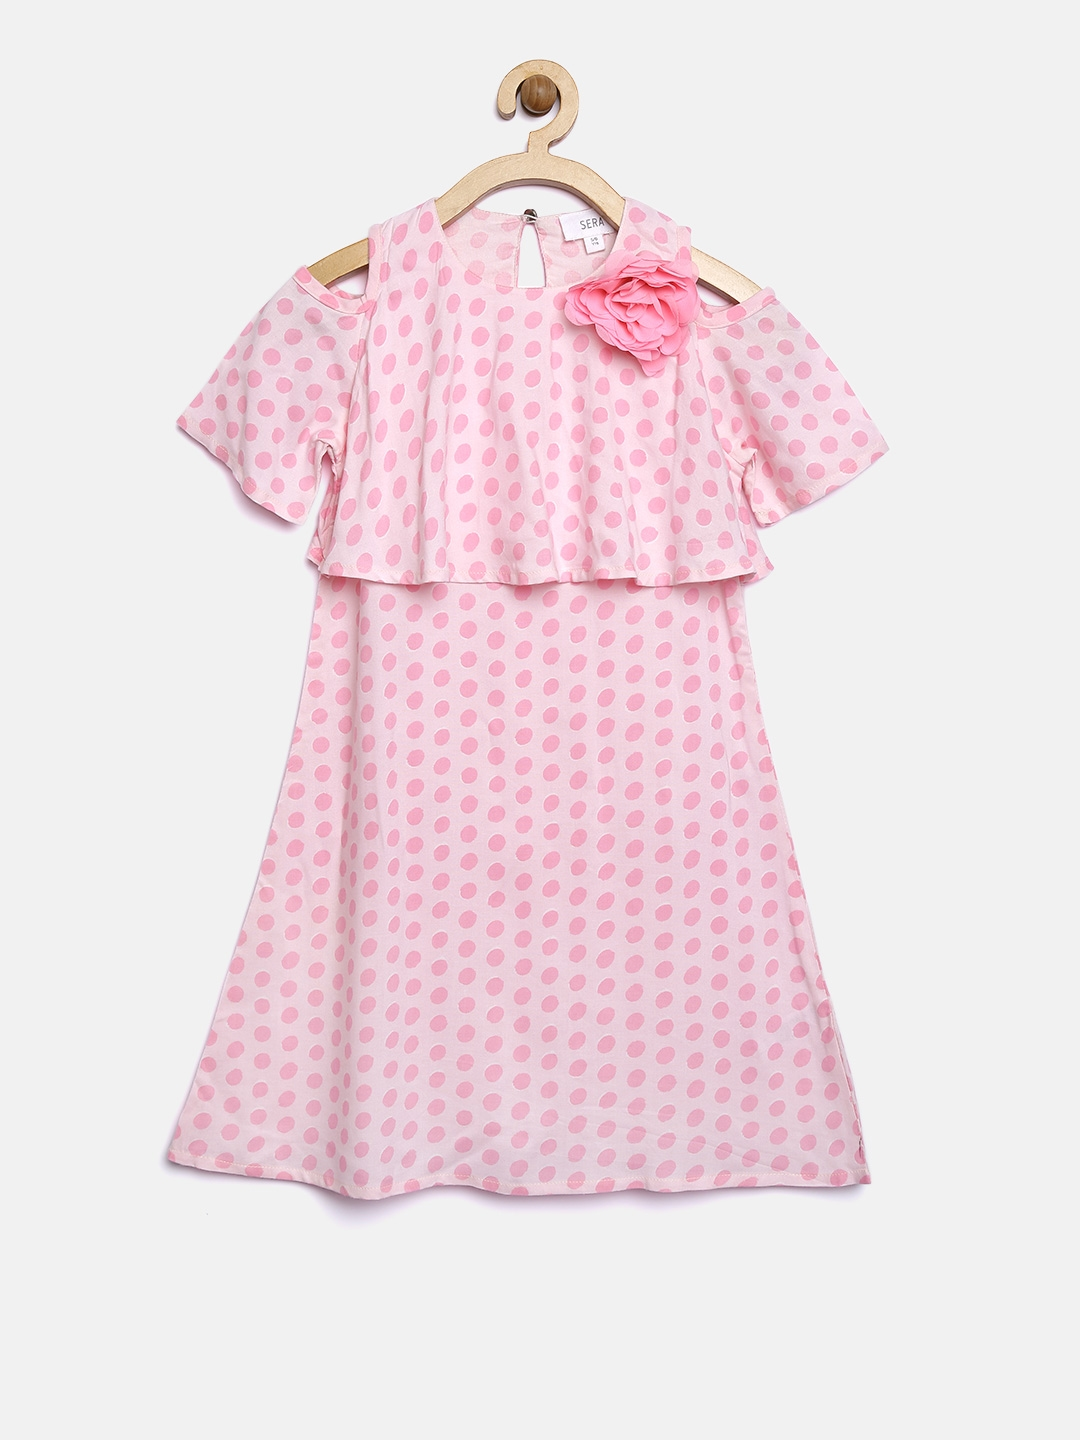 dresses for girls buy frocks u0026 children dresses online